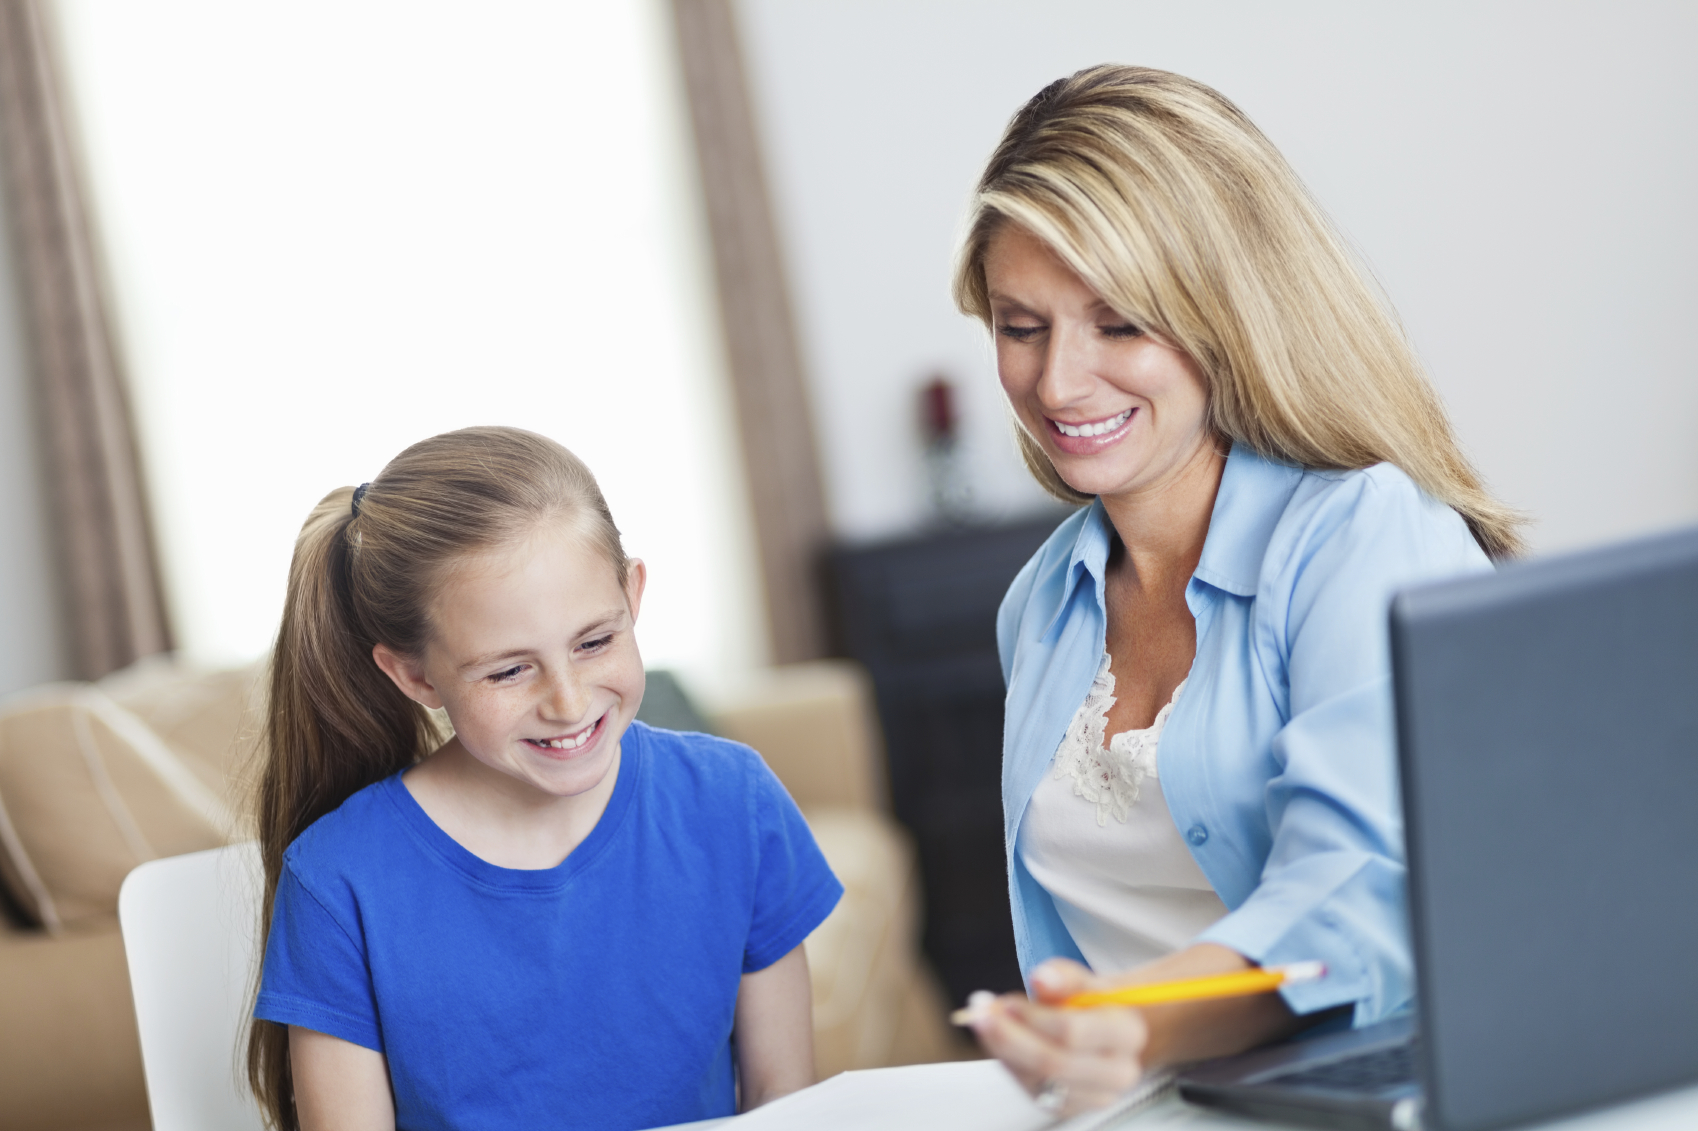 tutor services Club z tutoring offers in home tutoring and online tutoring in the following subjects: math, science,test prep, foreign languages, reading, writing, pre k, study skills and college.